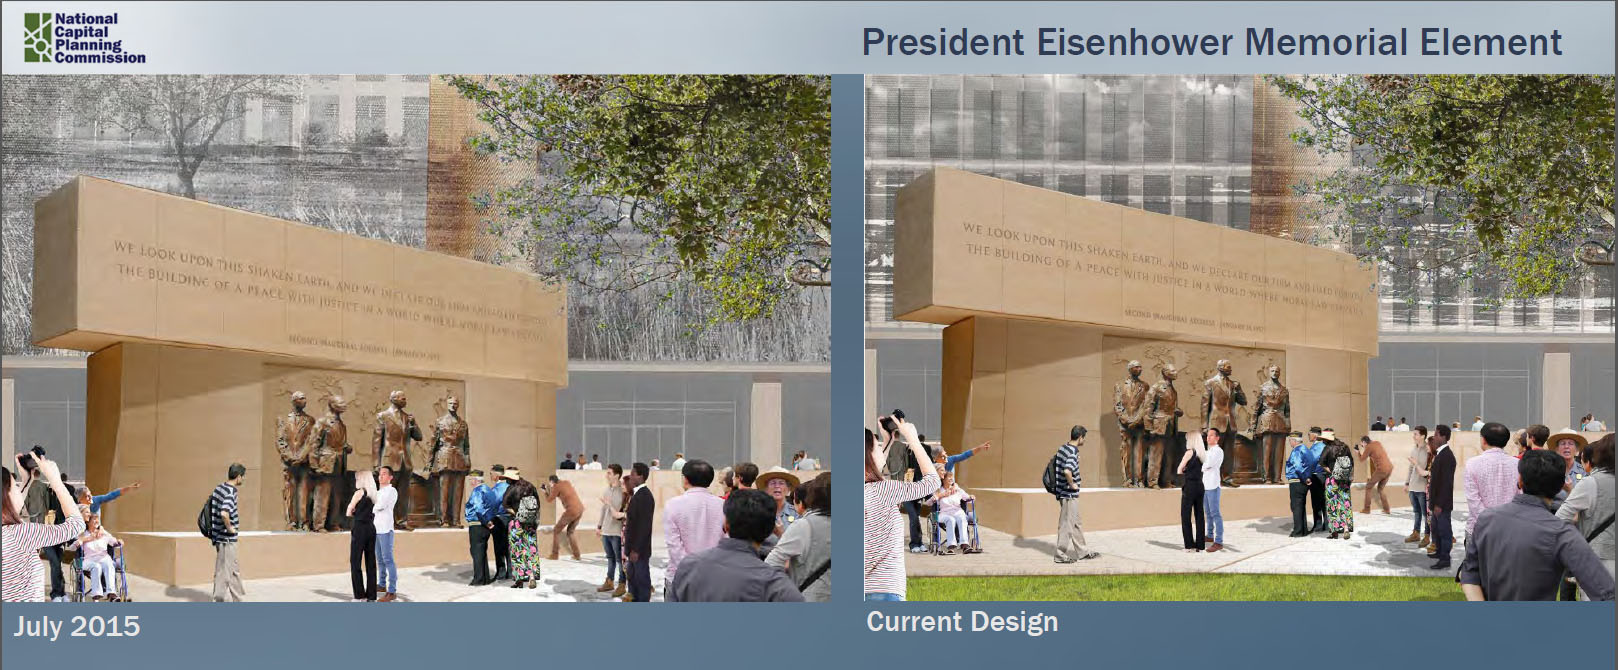 The memorial will feature quotes from President Eisenhower which have not changed significantly since the July 2015 approved design. (Courtesy National Capital Planning Commission)